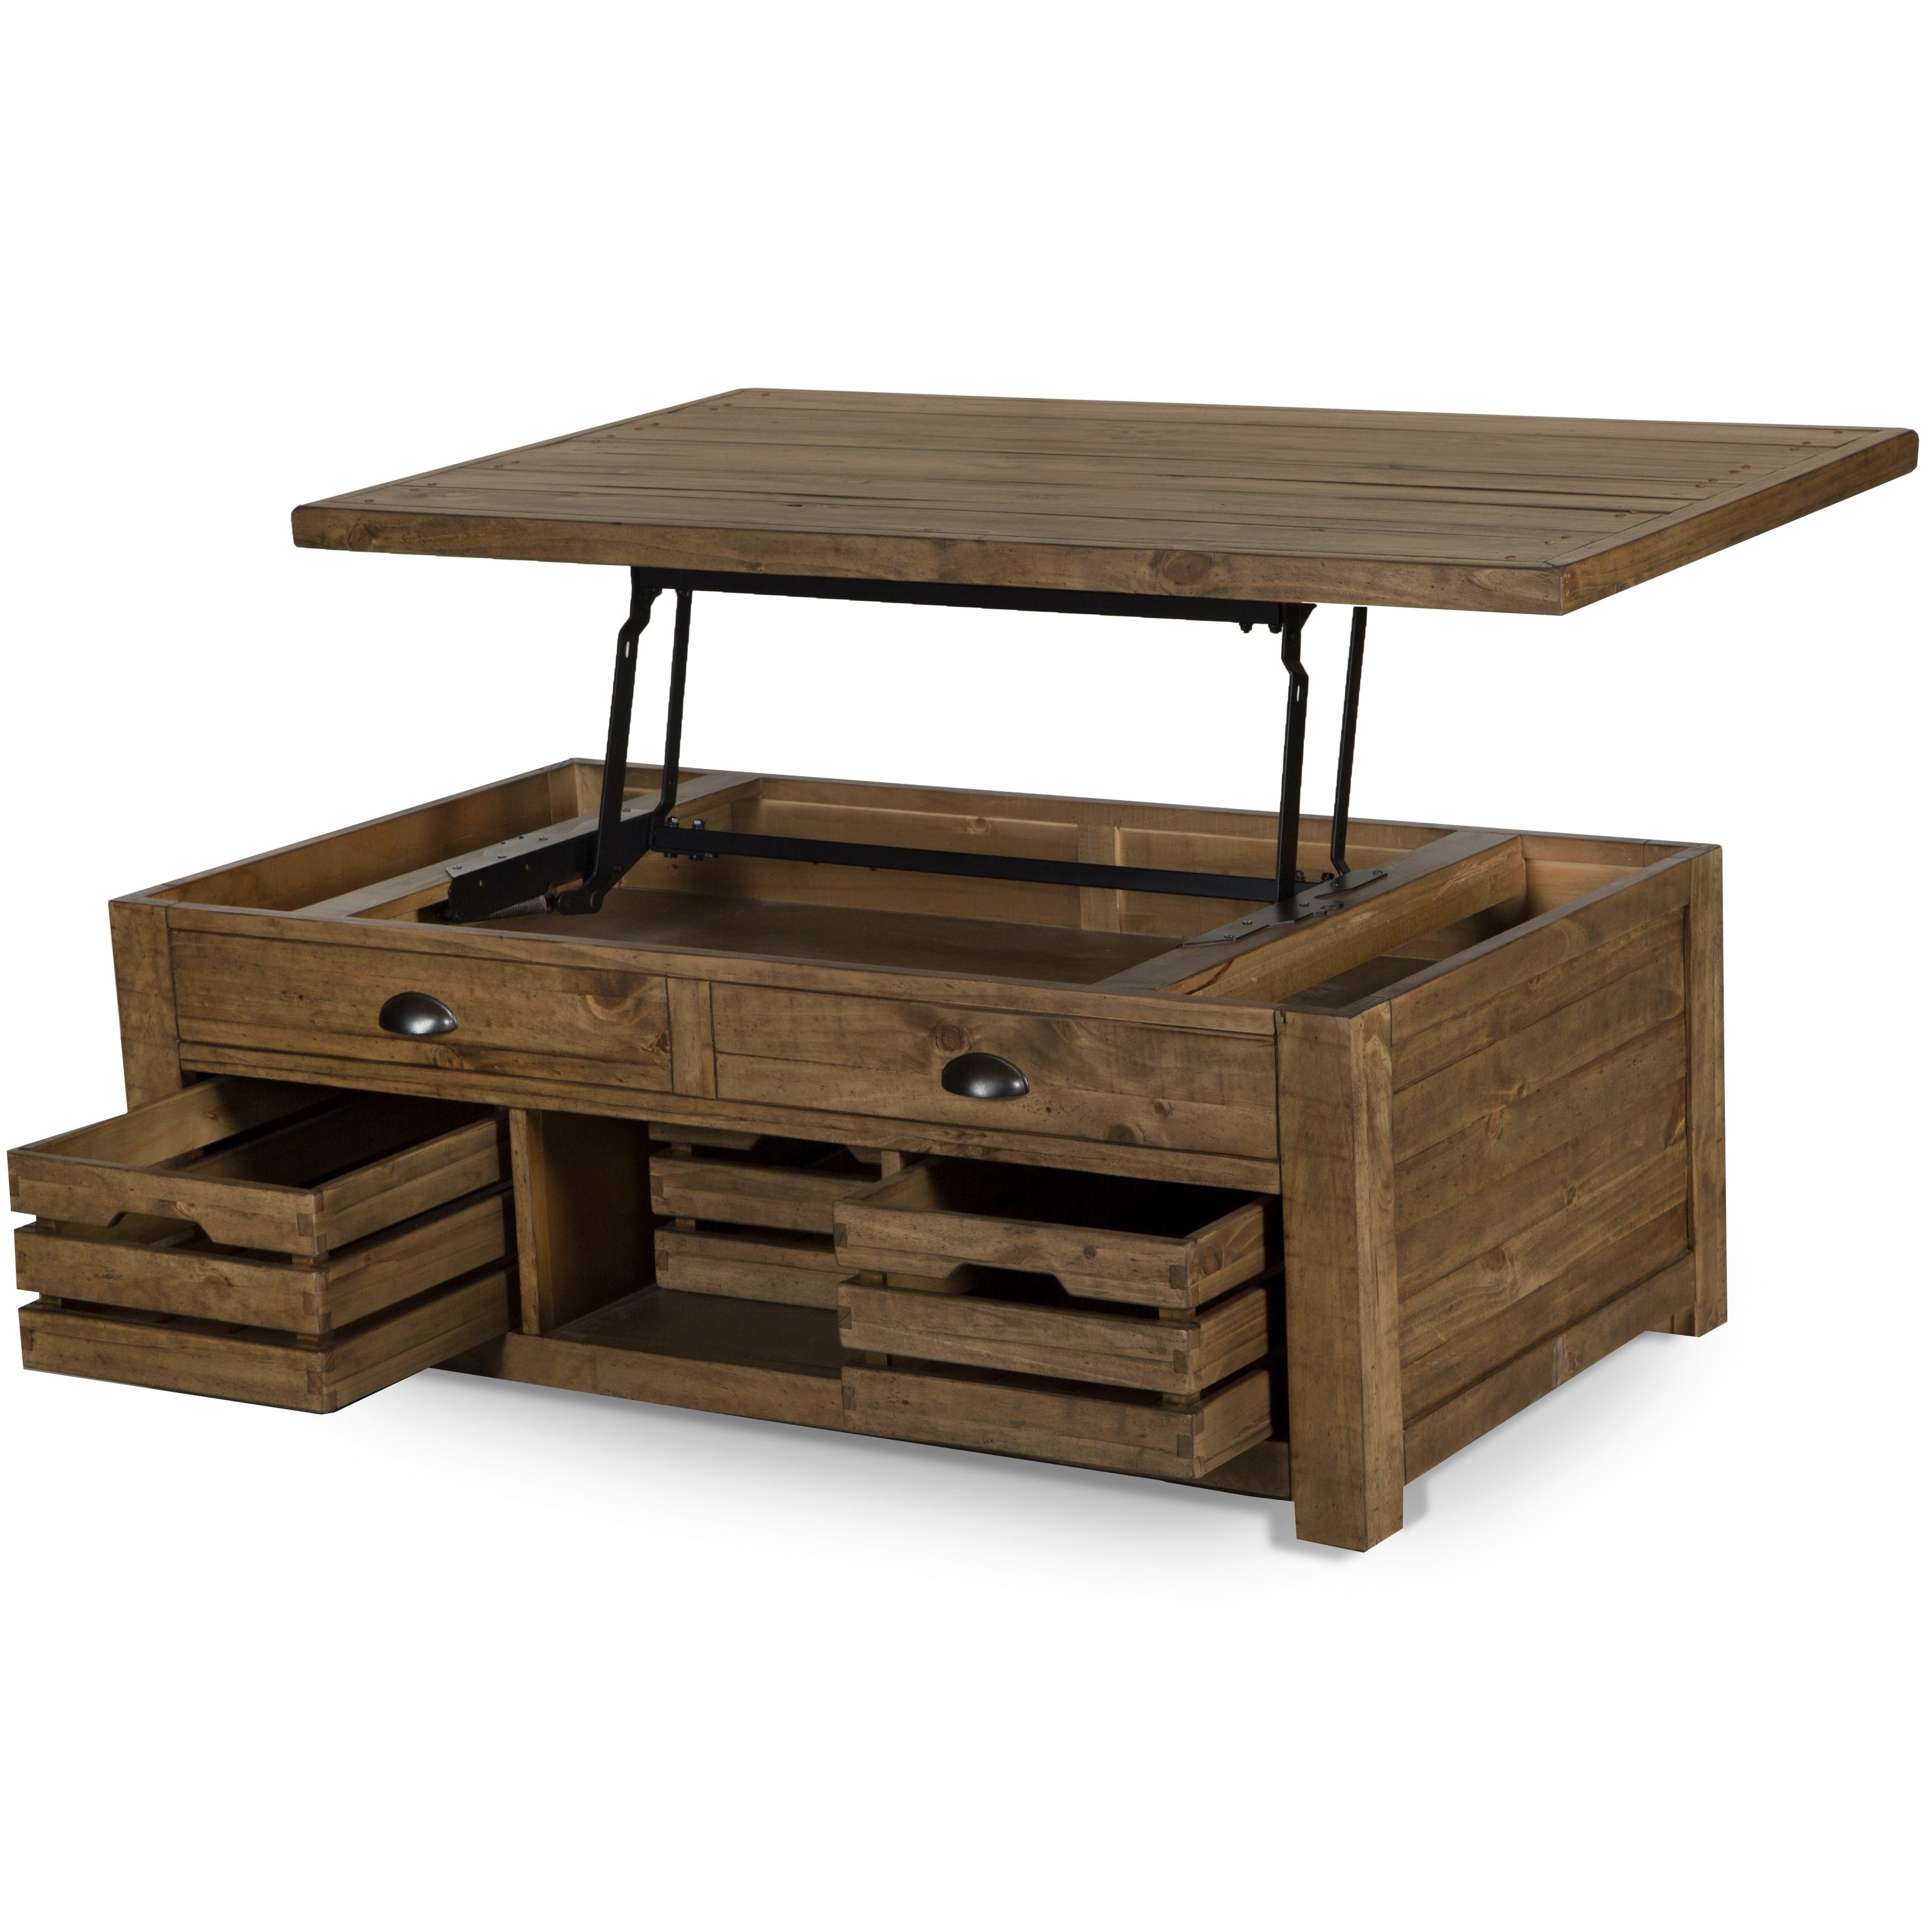 Overstock Com Online Shopping Bedding Furniture Electronics Jewelry Clothing More In 2021 Coffee Table With Storage Coffee Table With Casters Coffee Table [ 3500 x 3500 Pixel ]